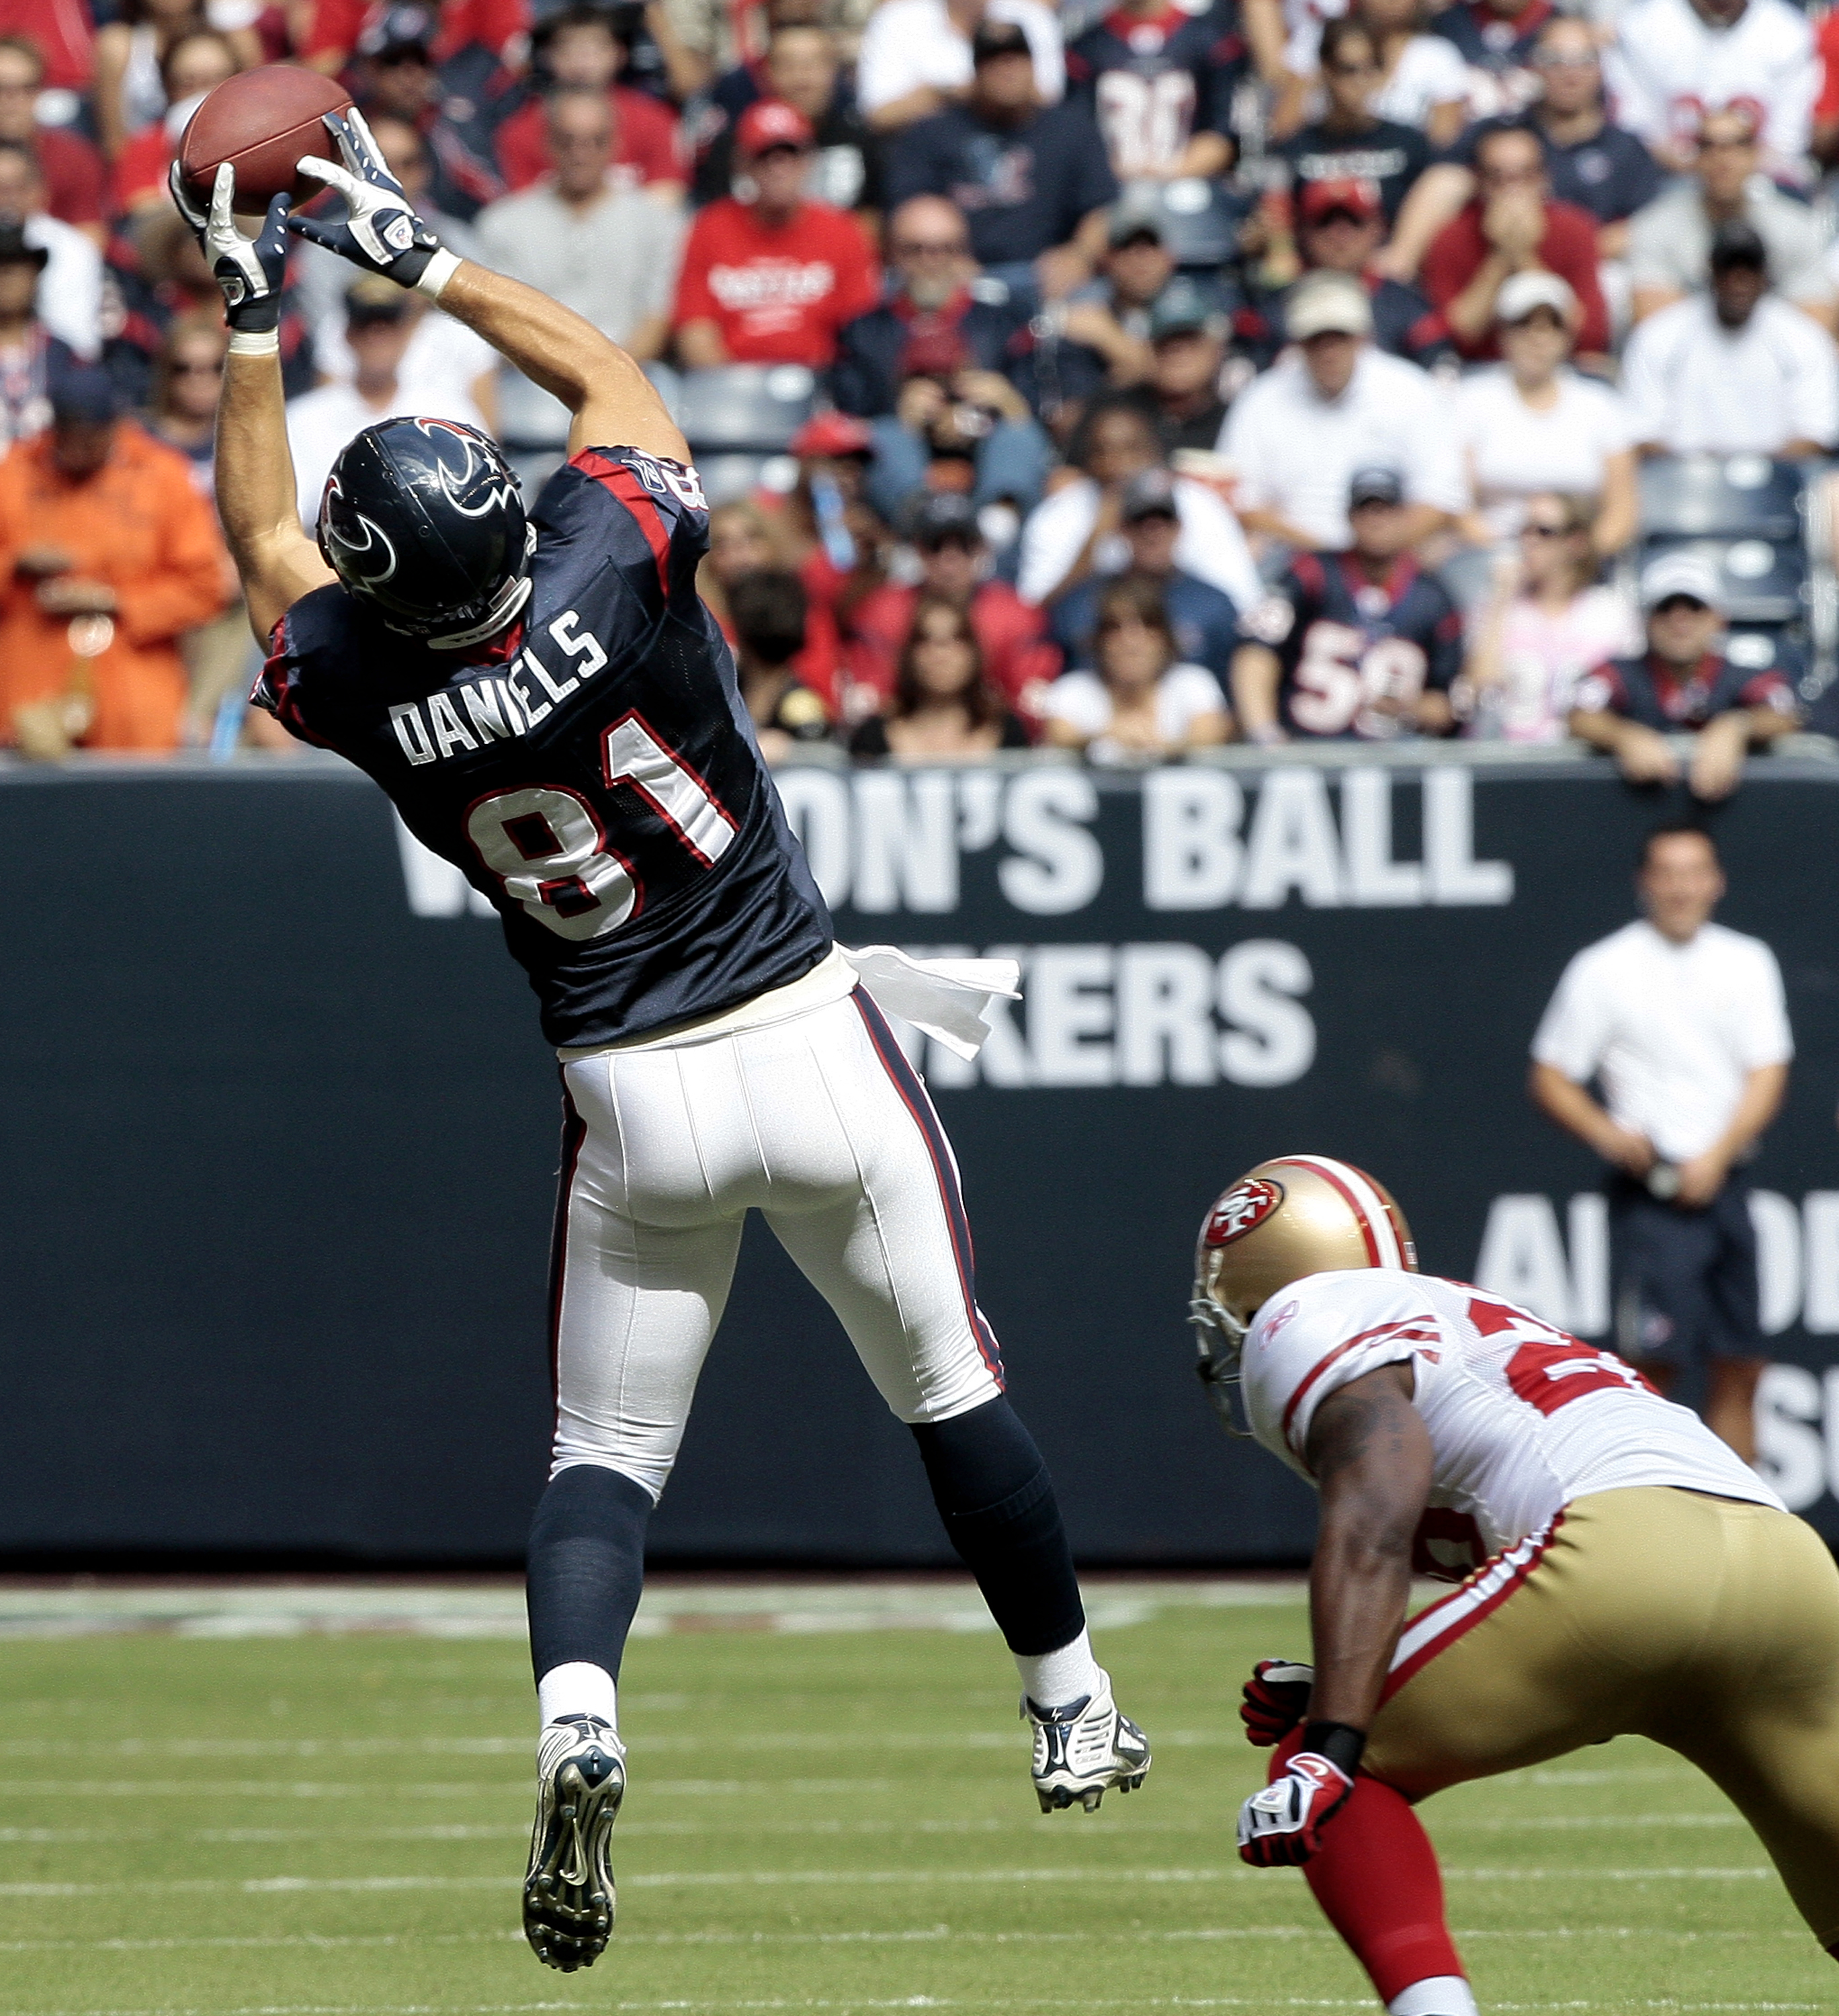 HOUSTON - OCTOBER 25:  Tight-end Owen Daniels #81 of the Houston Texans completes a pass in front of safety Mark Roman #26 of the San Francisco 49ers at Reliant Stadium on October 25, 2009 in Houston, Texas.  (Photo by Bob Levey/Getty Images)